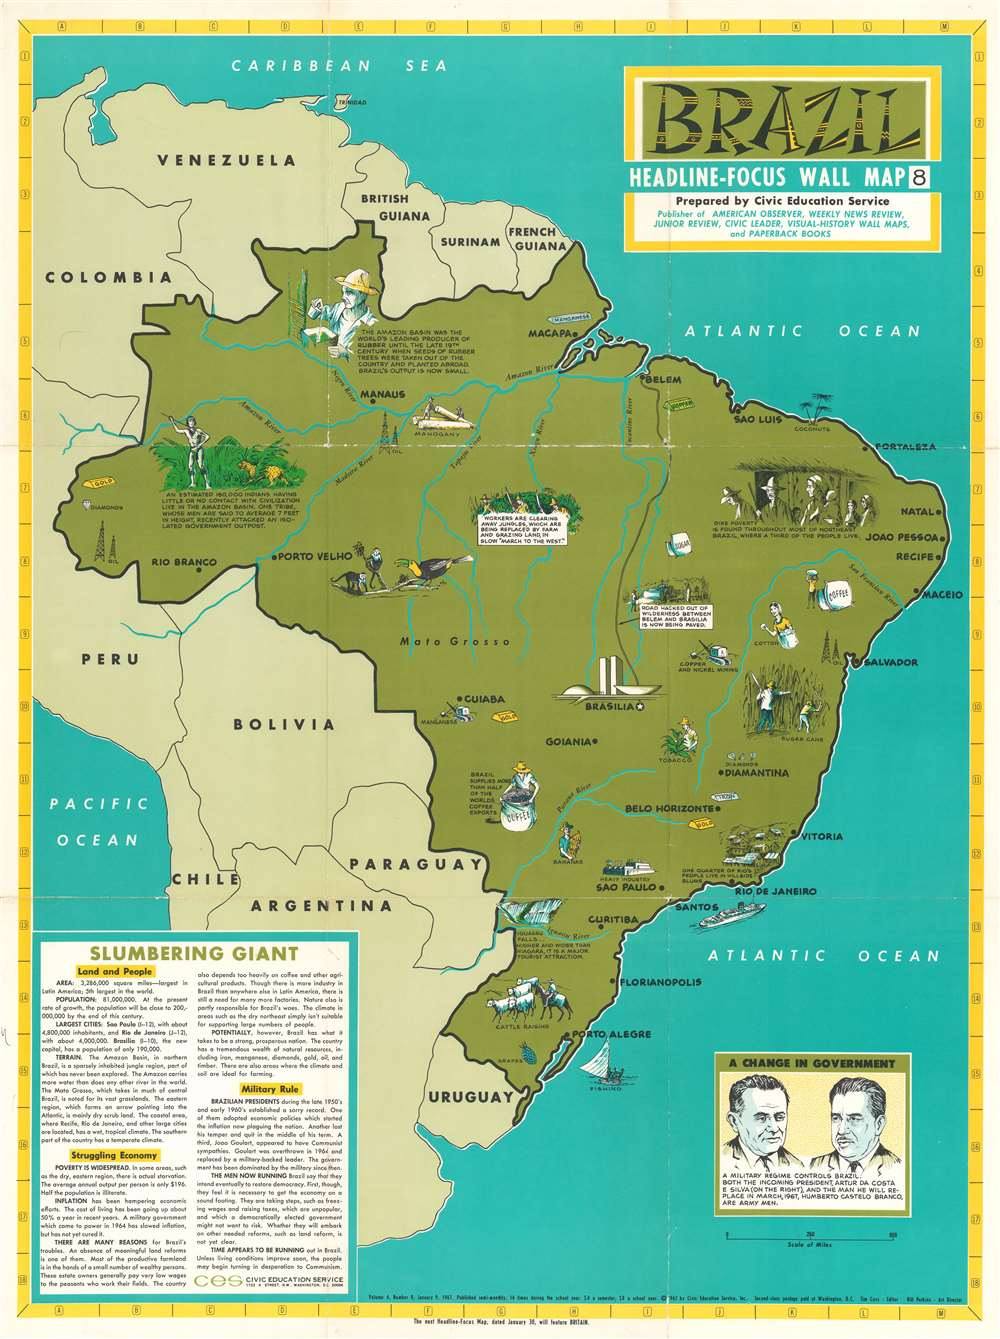 1967 Civic Education Service Pictorial Map of Brazil